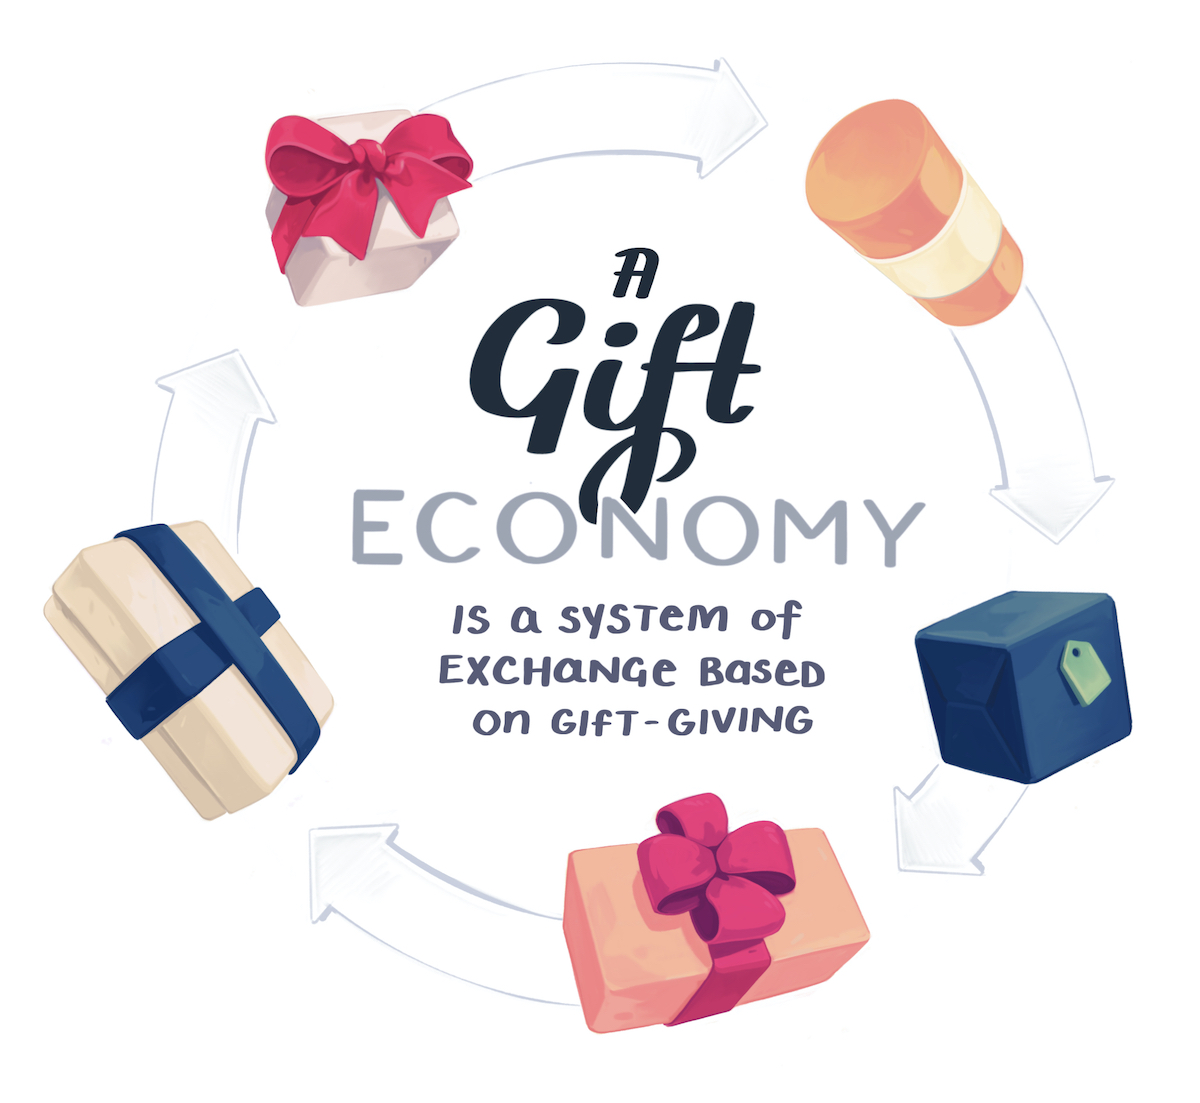 Gift economies are systems of exchange based on gift-giving